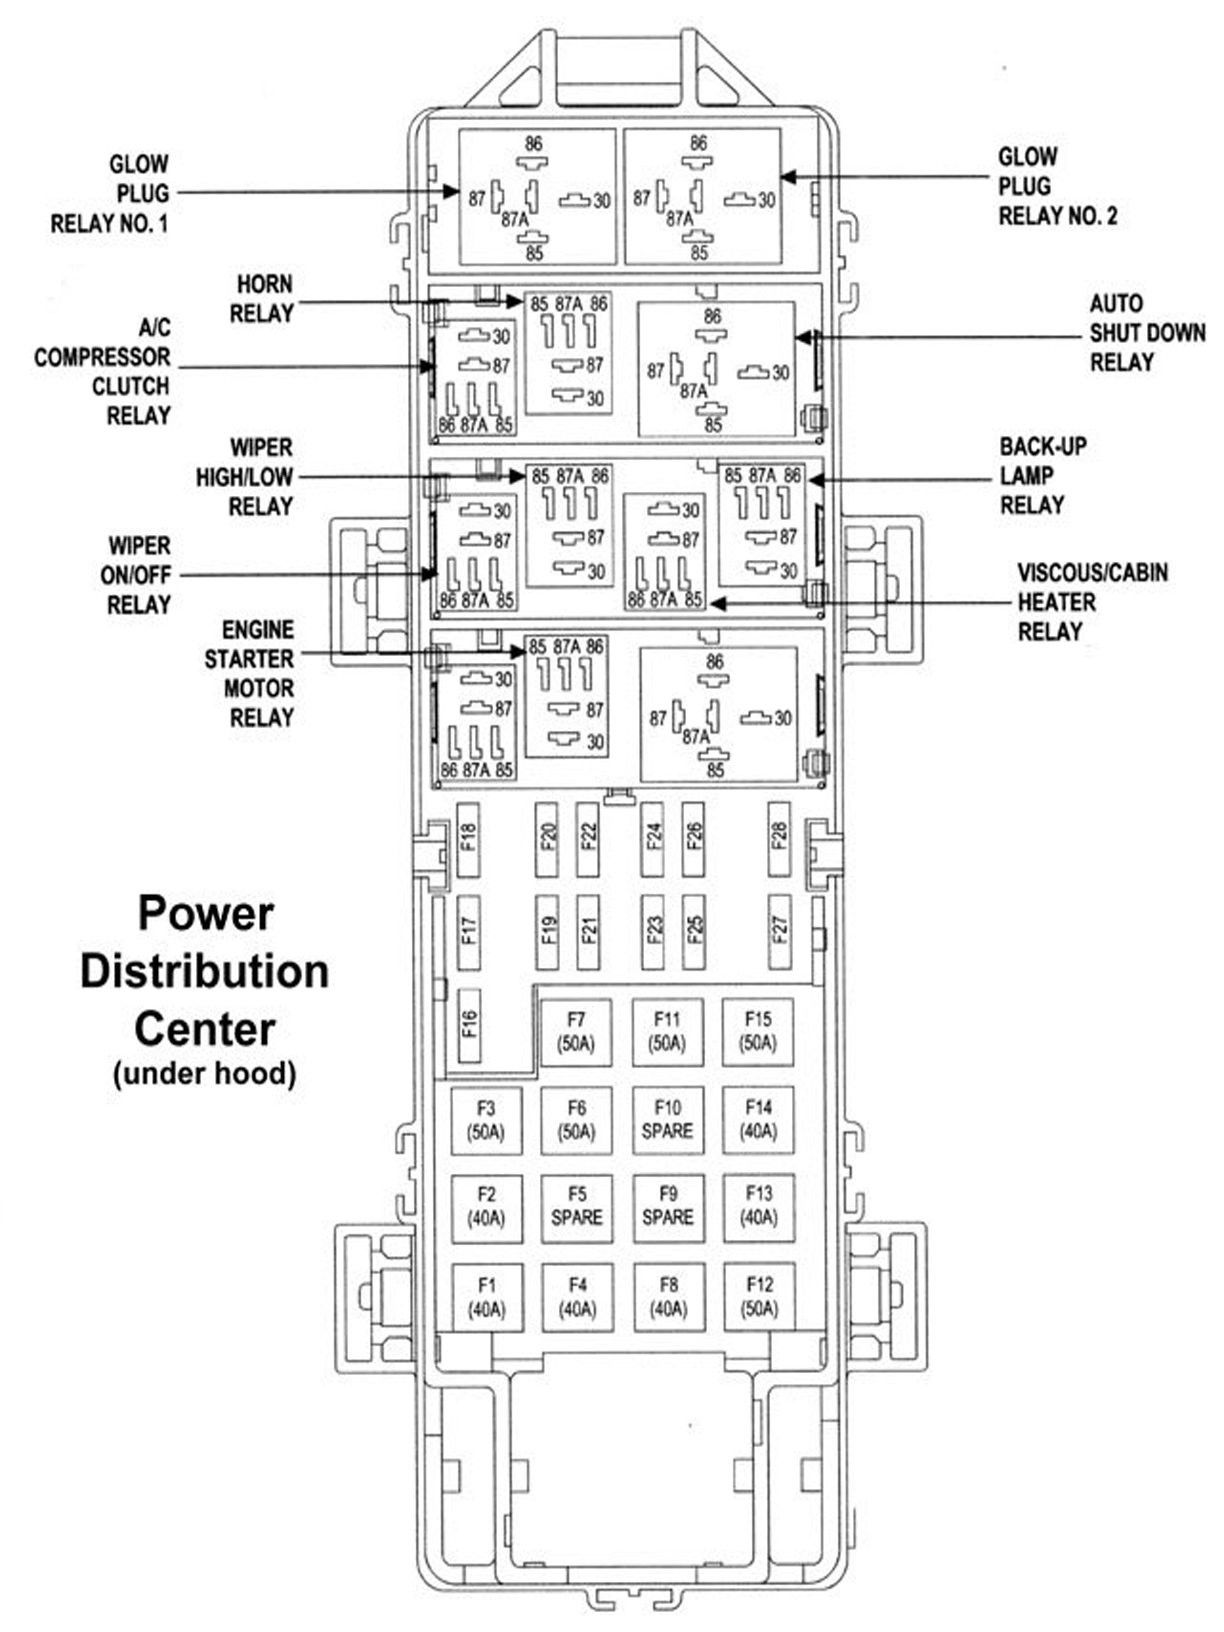 Jeep Grand Cherokee Laredo Interior Fuse Box Diagram